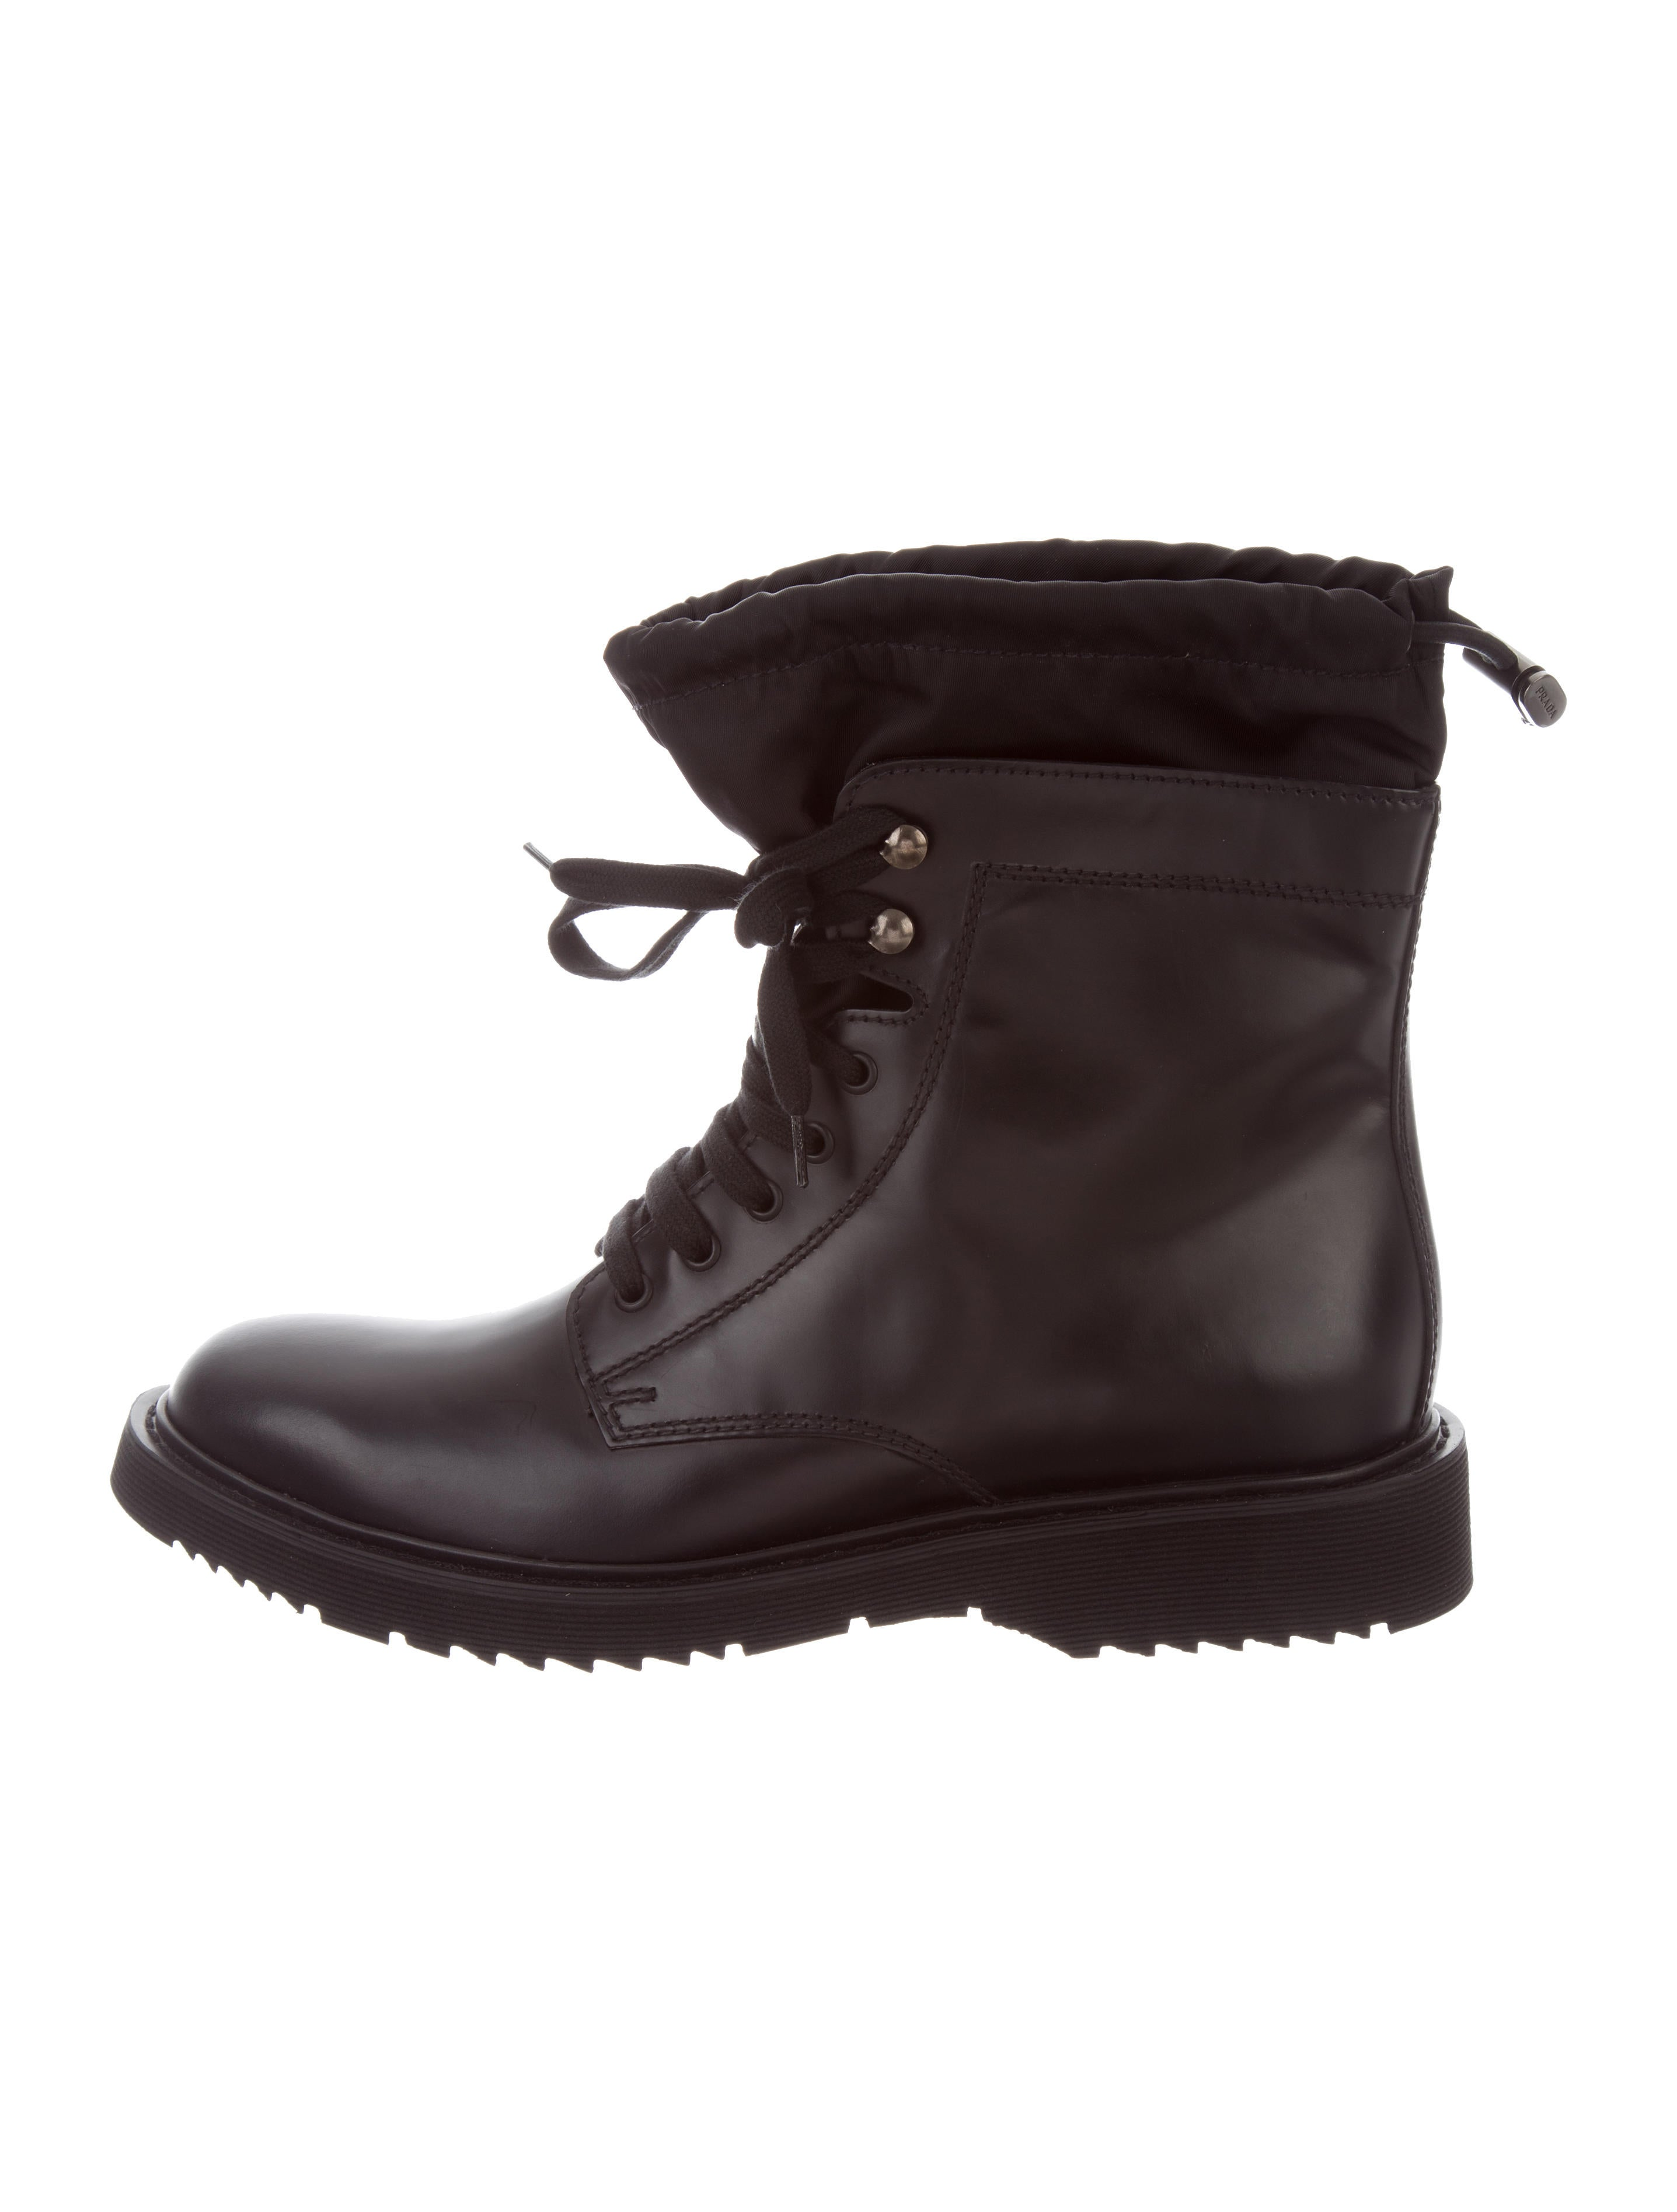 prada leather combat boots shoes pra161370 the realreal